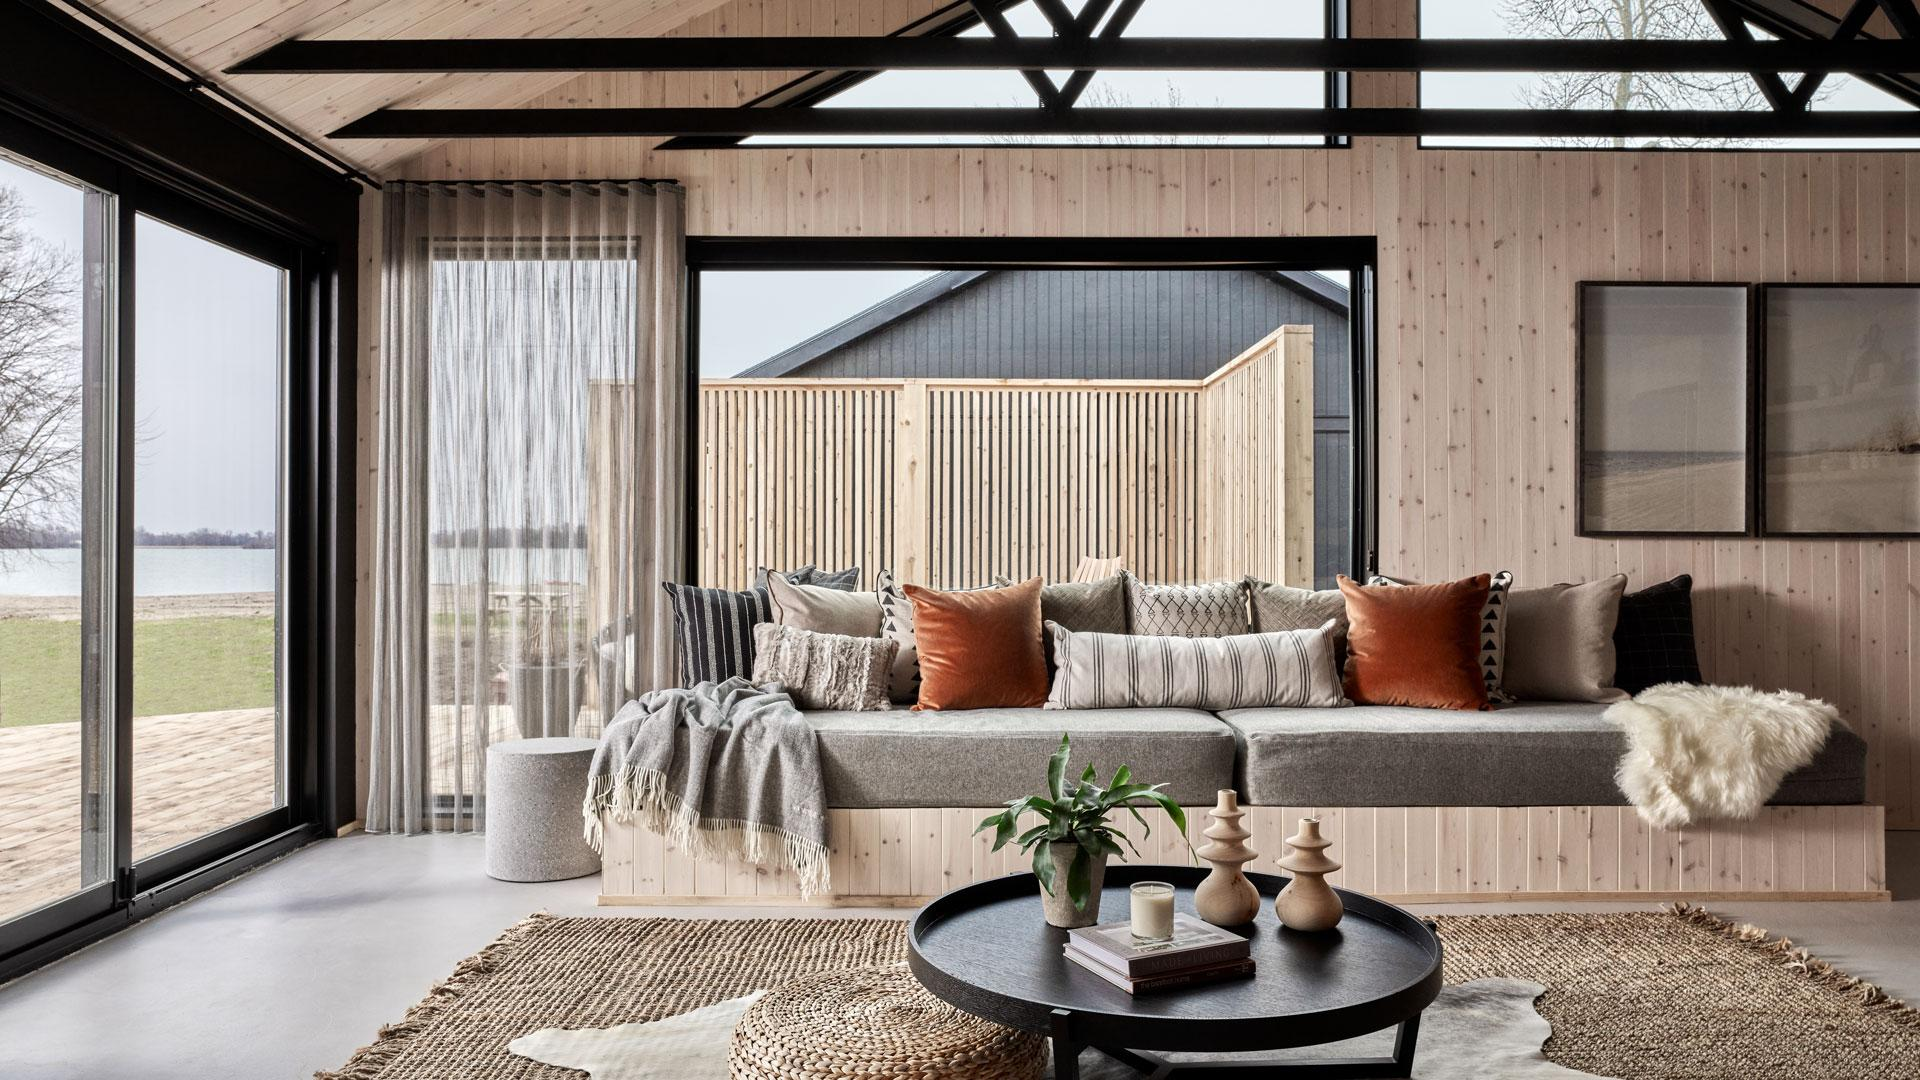 Wander the Resort in Prince Edward County | Inside the cabin's living room area